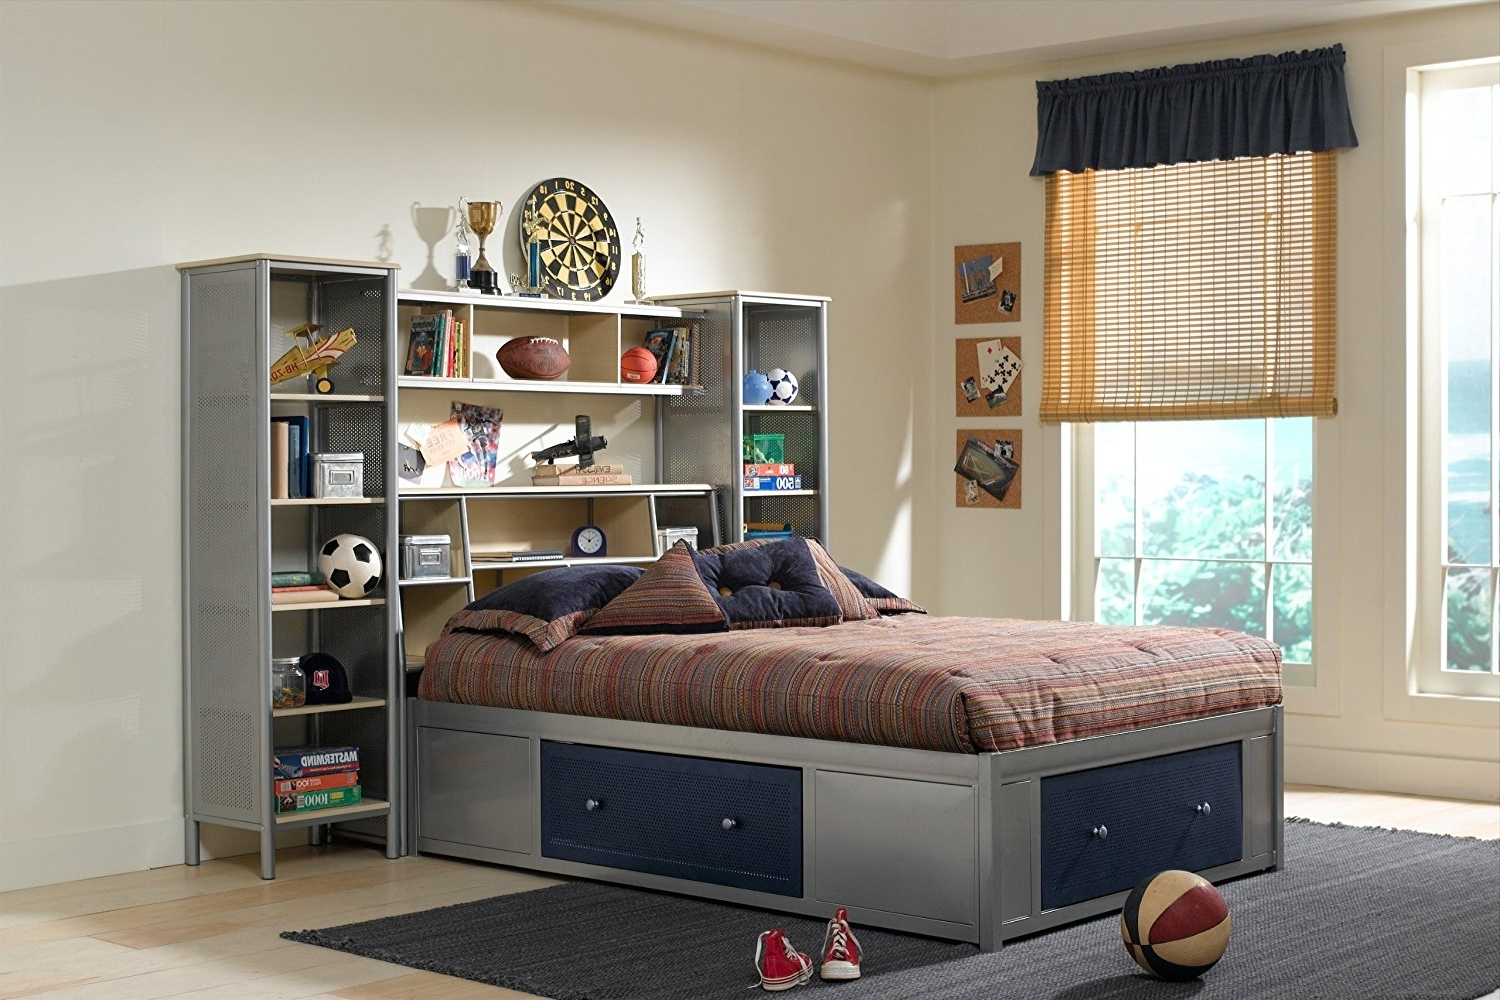 Most Current Bed Frame Bookcases Intended For Amazon – Universal Storage Platform Bed W/ Bookcase Headboard (View 11 of 15)